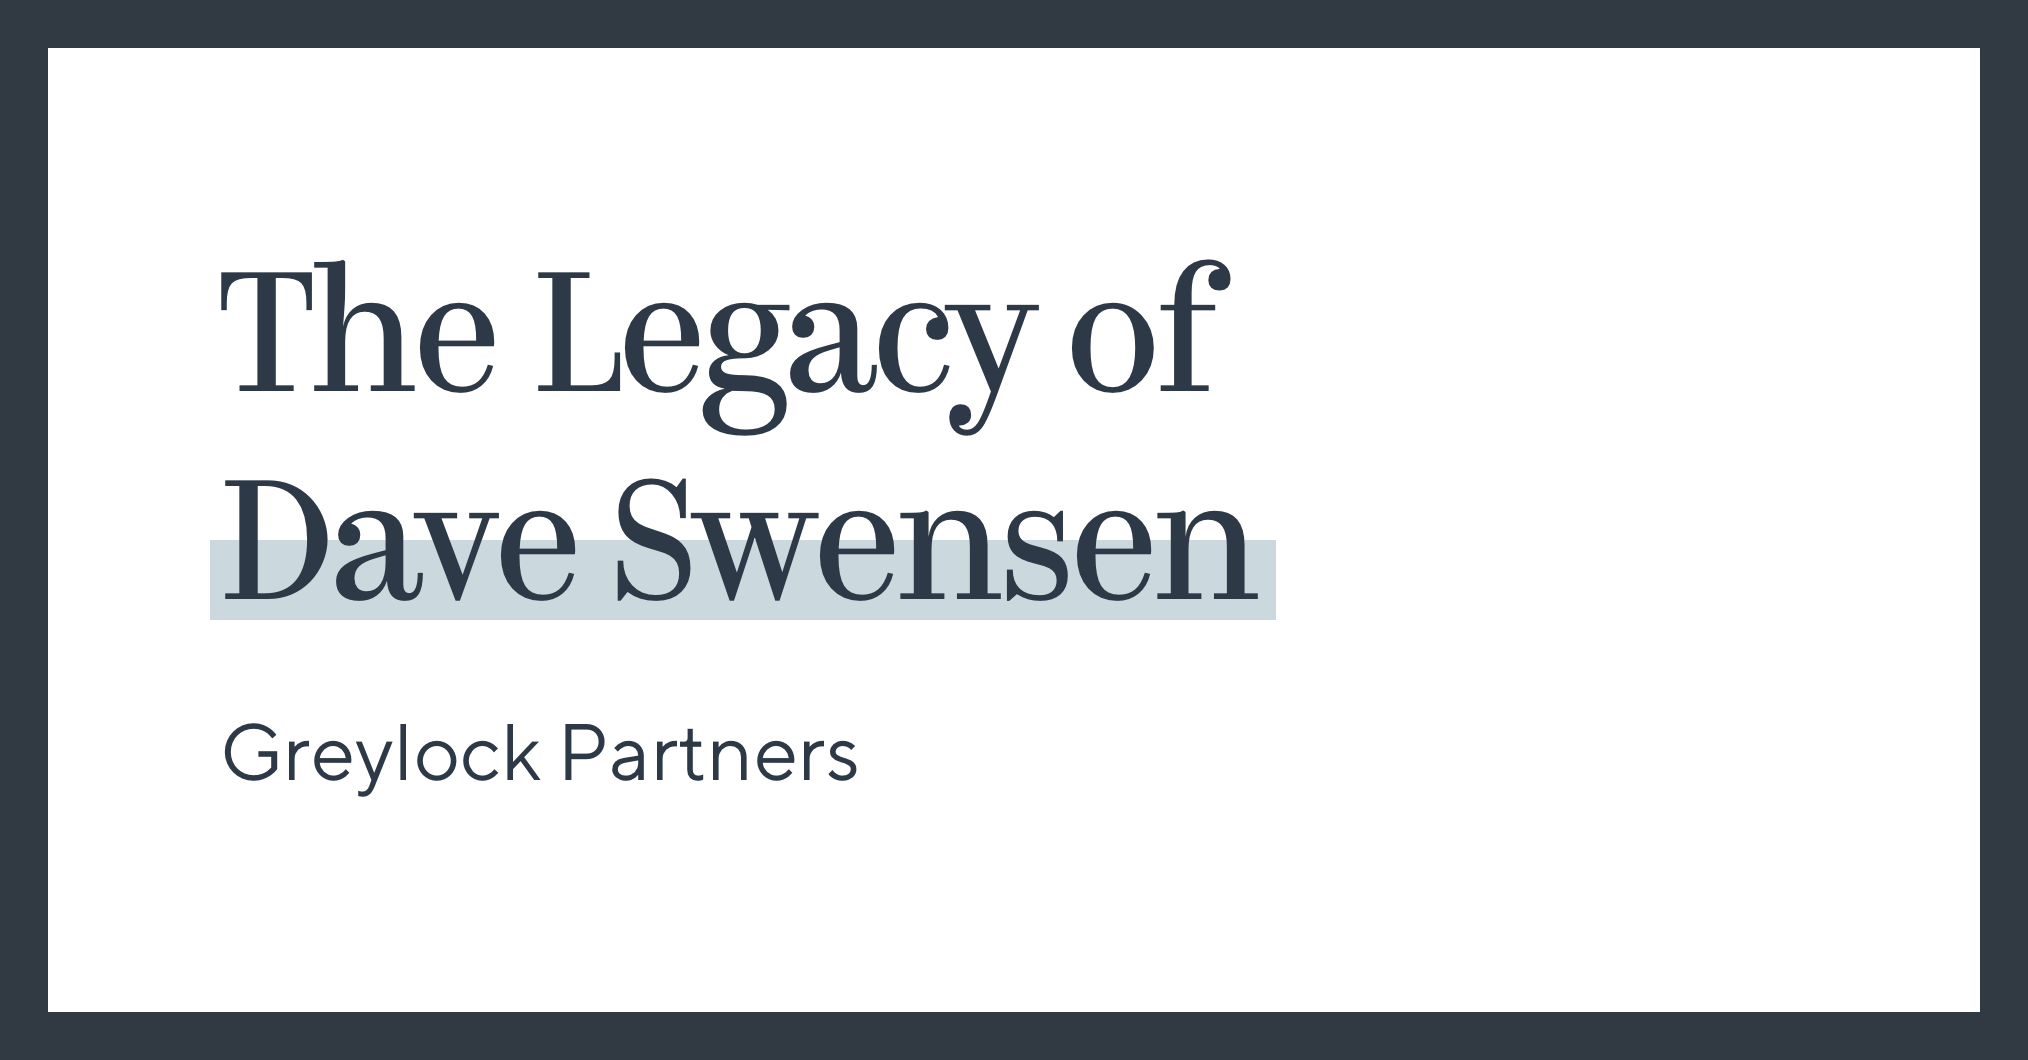 The Legacy of Dave Swensen